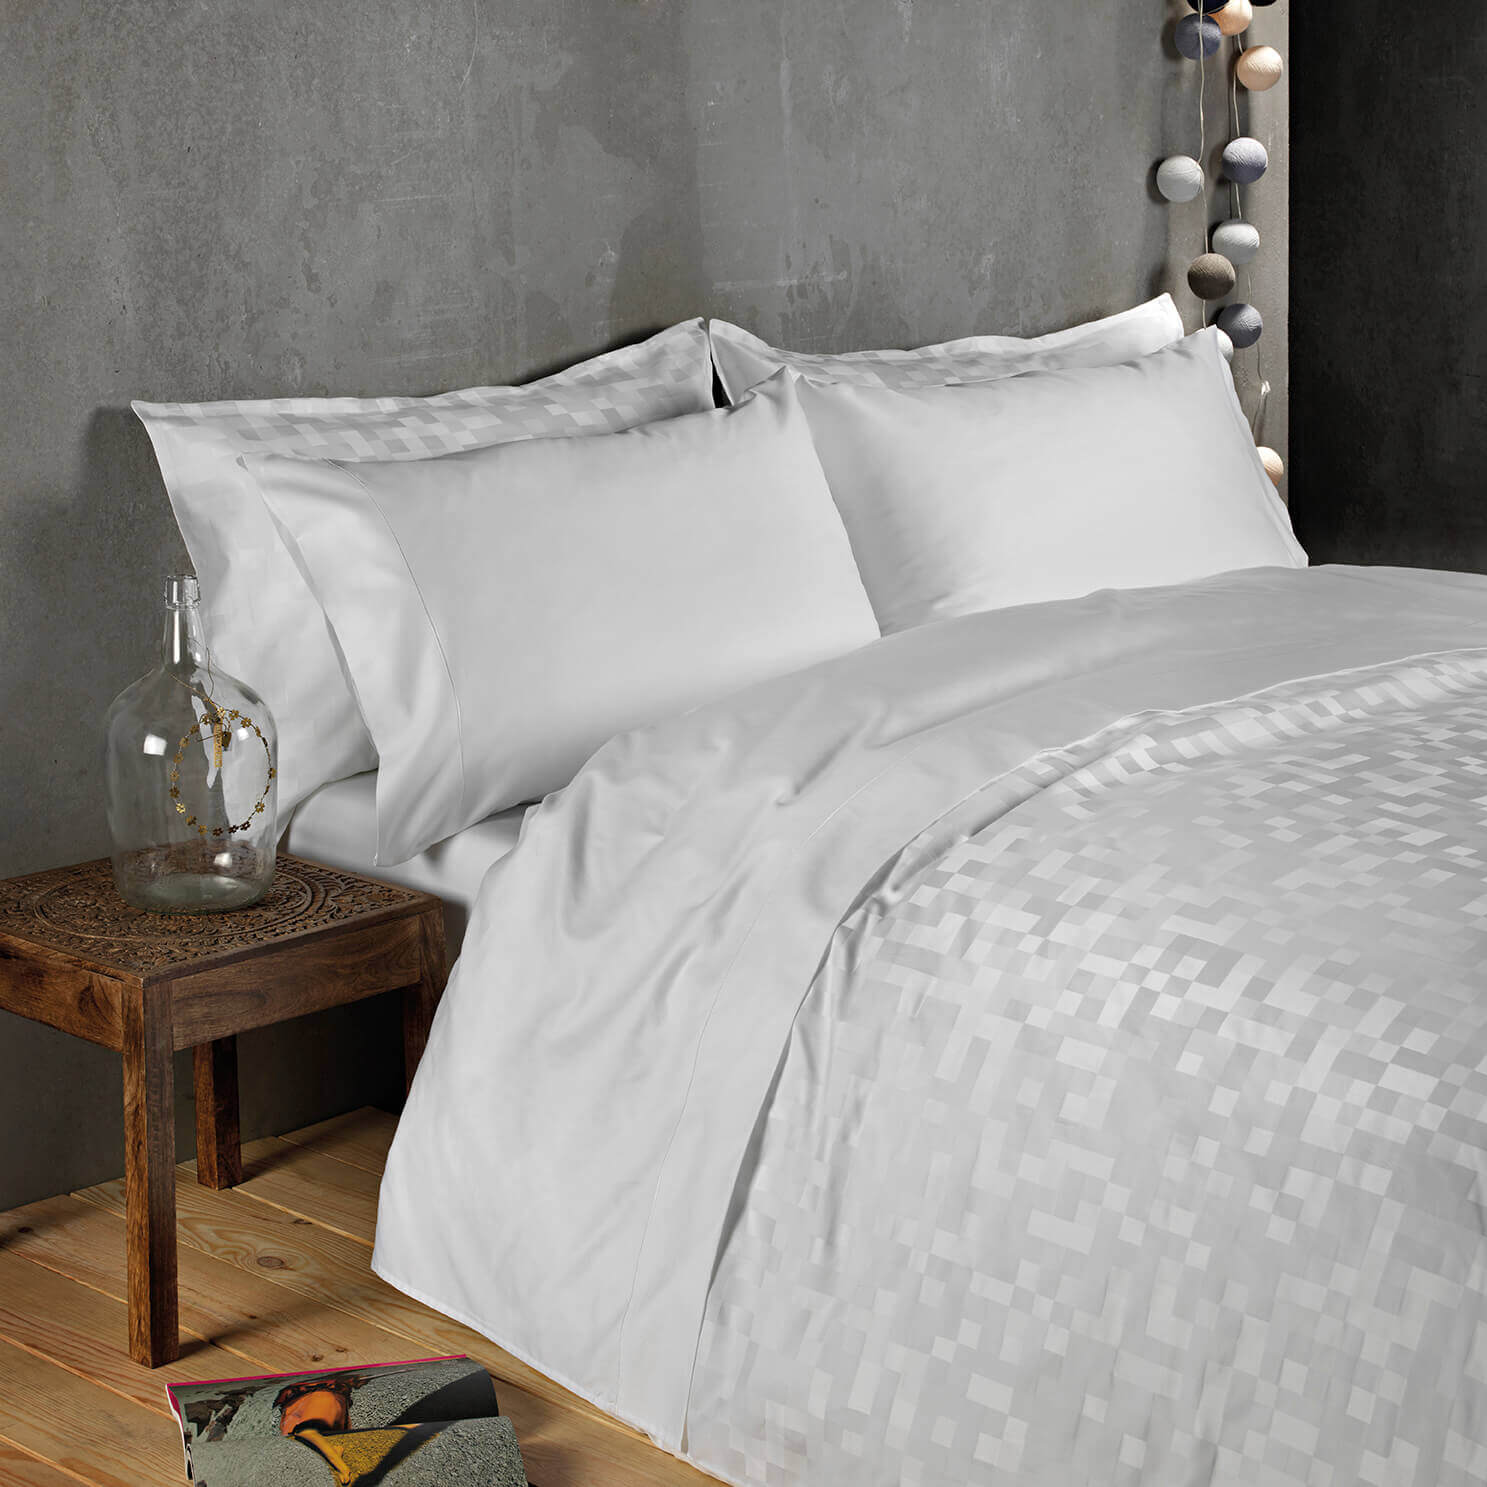 Bedding - Luxury Bedding JG Home New York